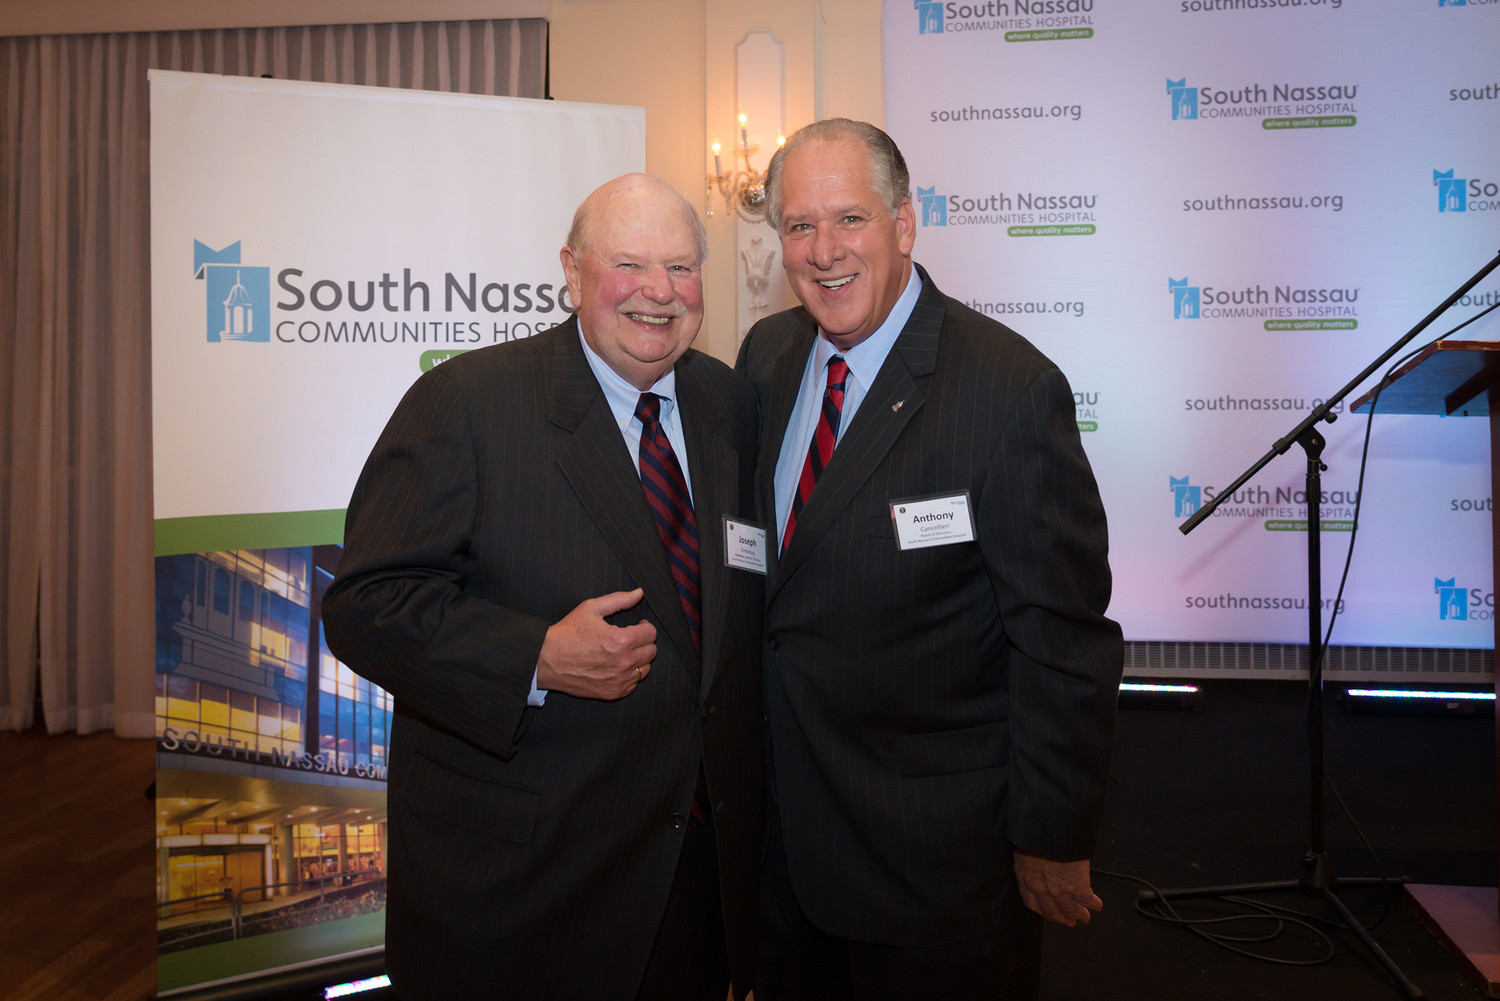 Joe Fennessy, president of the SNCH hospital Board of Directors,. stands with Anthony Cancellieri, vice chair.